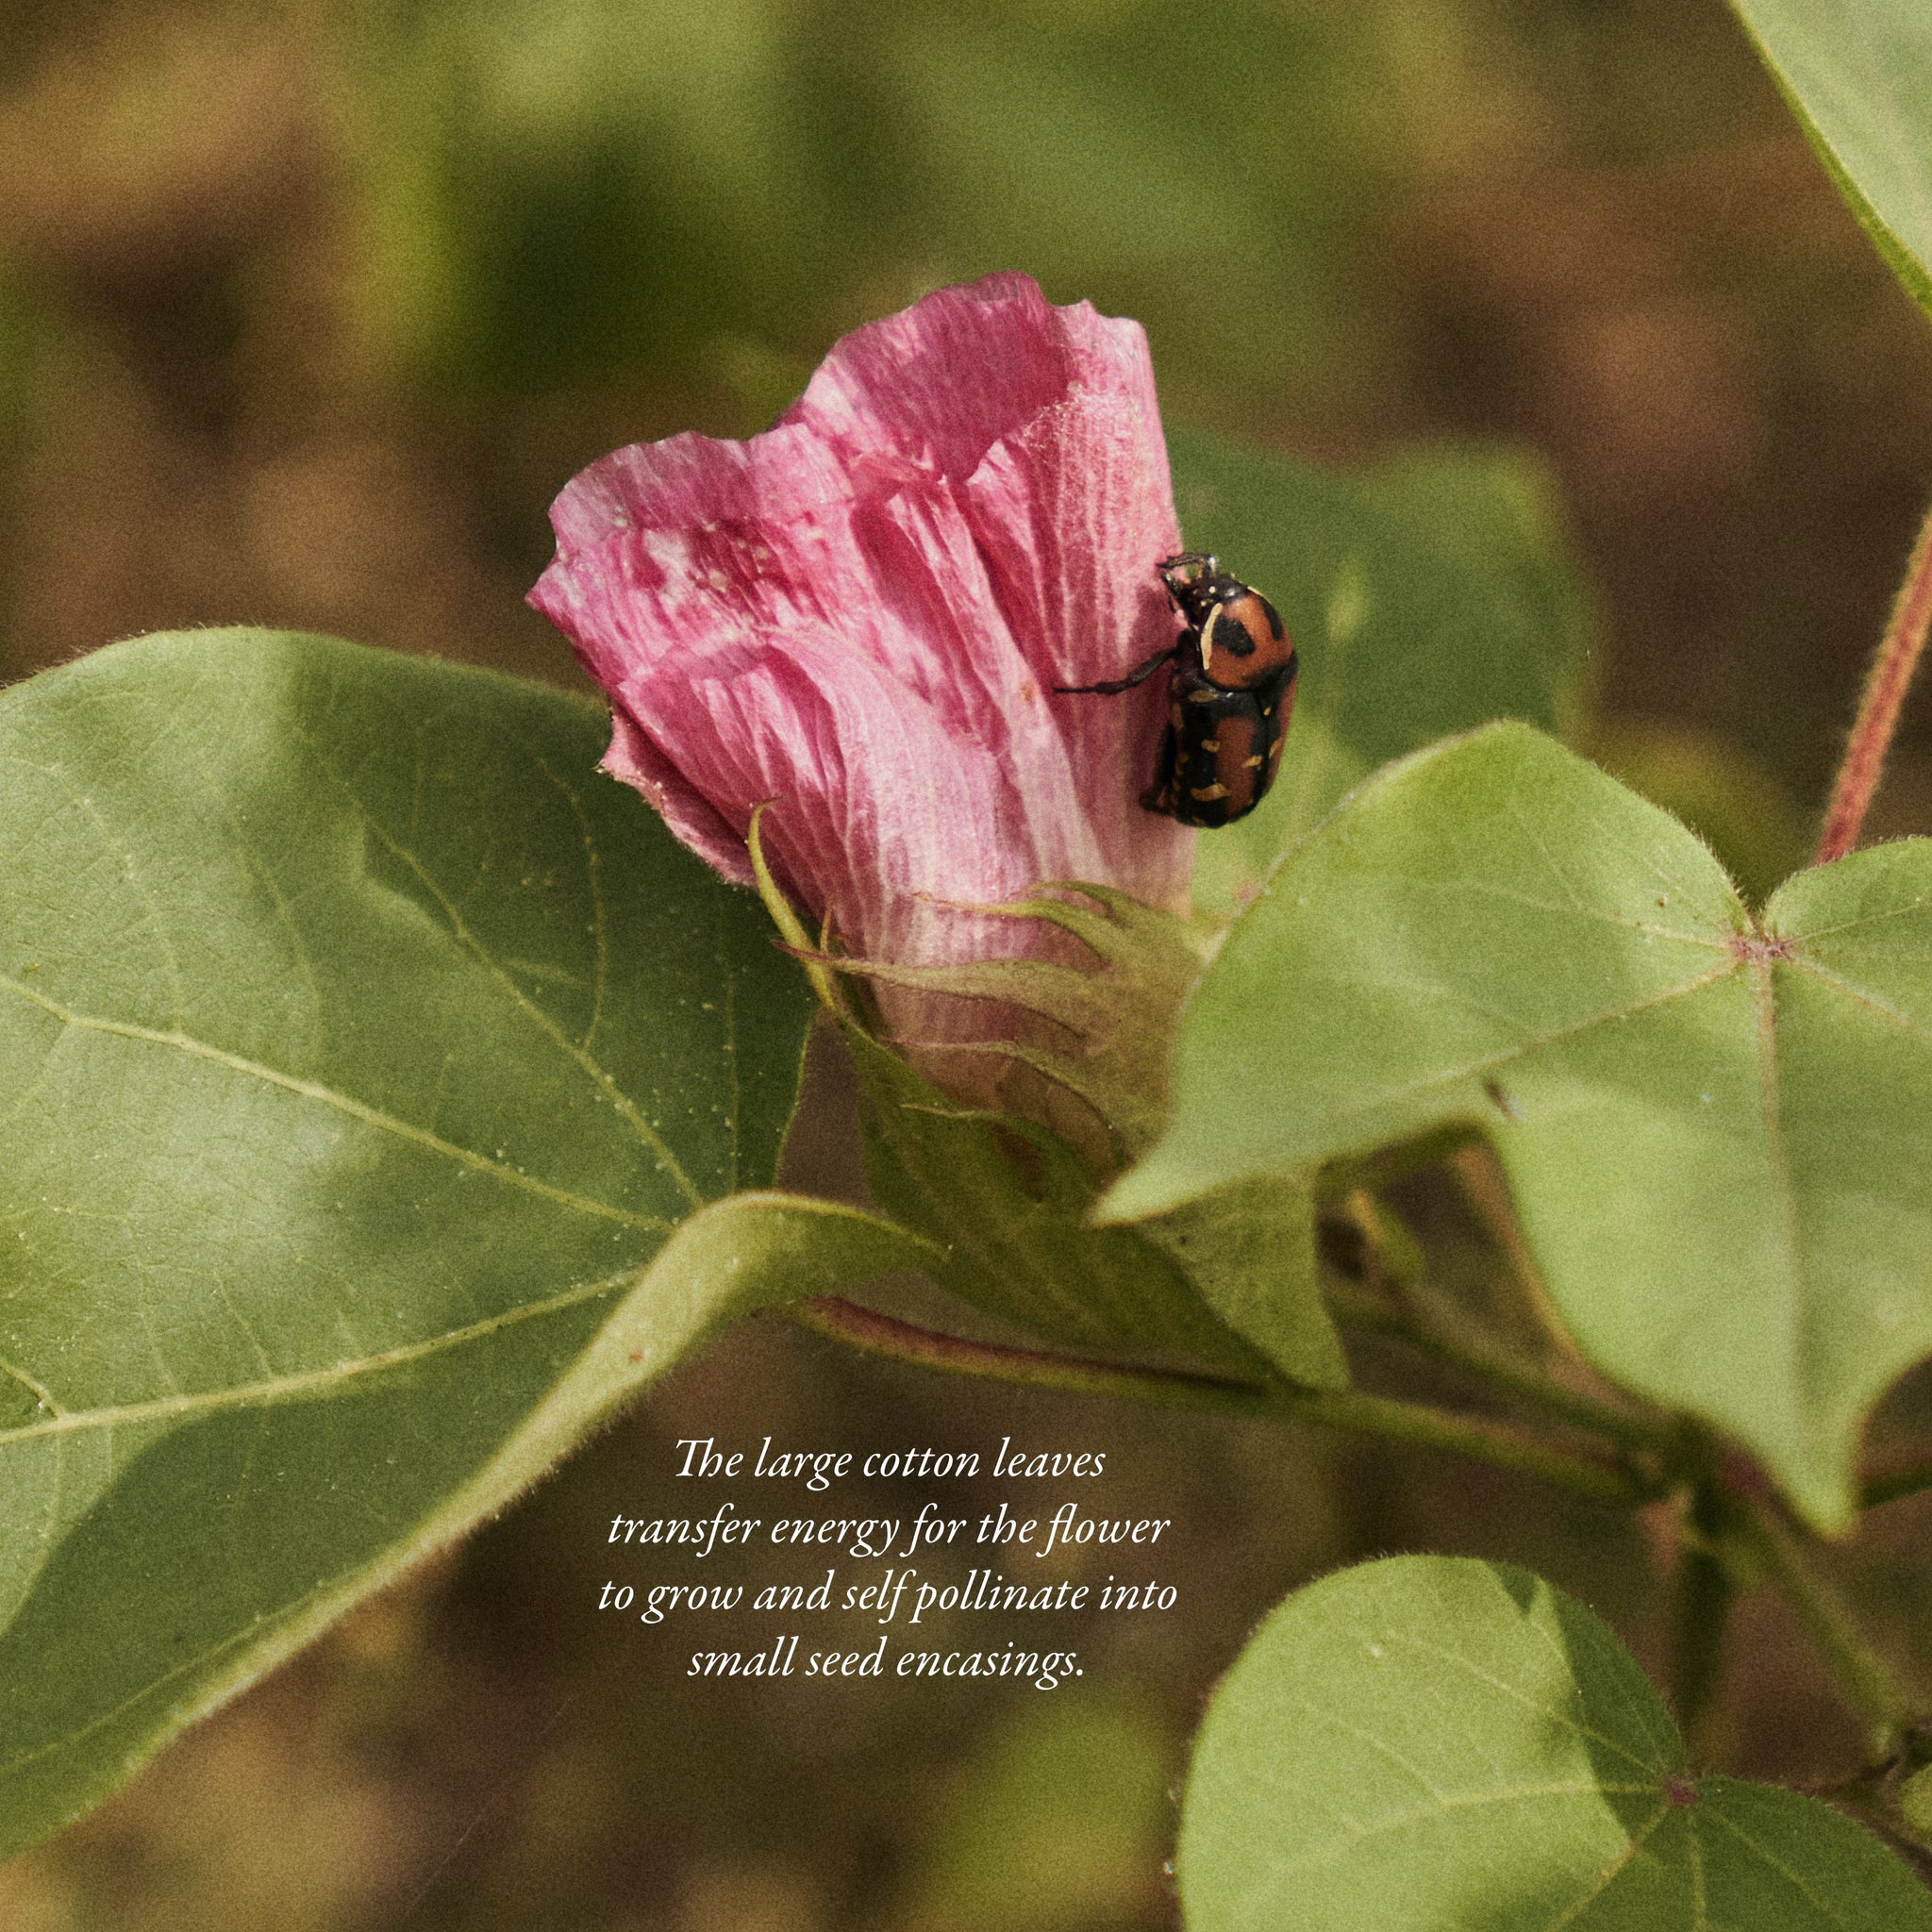 The large cotton leaves transfer energy for the flower to grow and self pollinate into small seed encasings.